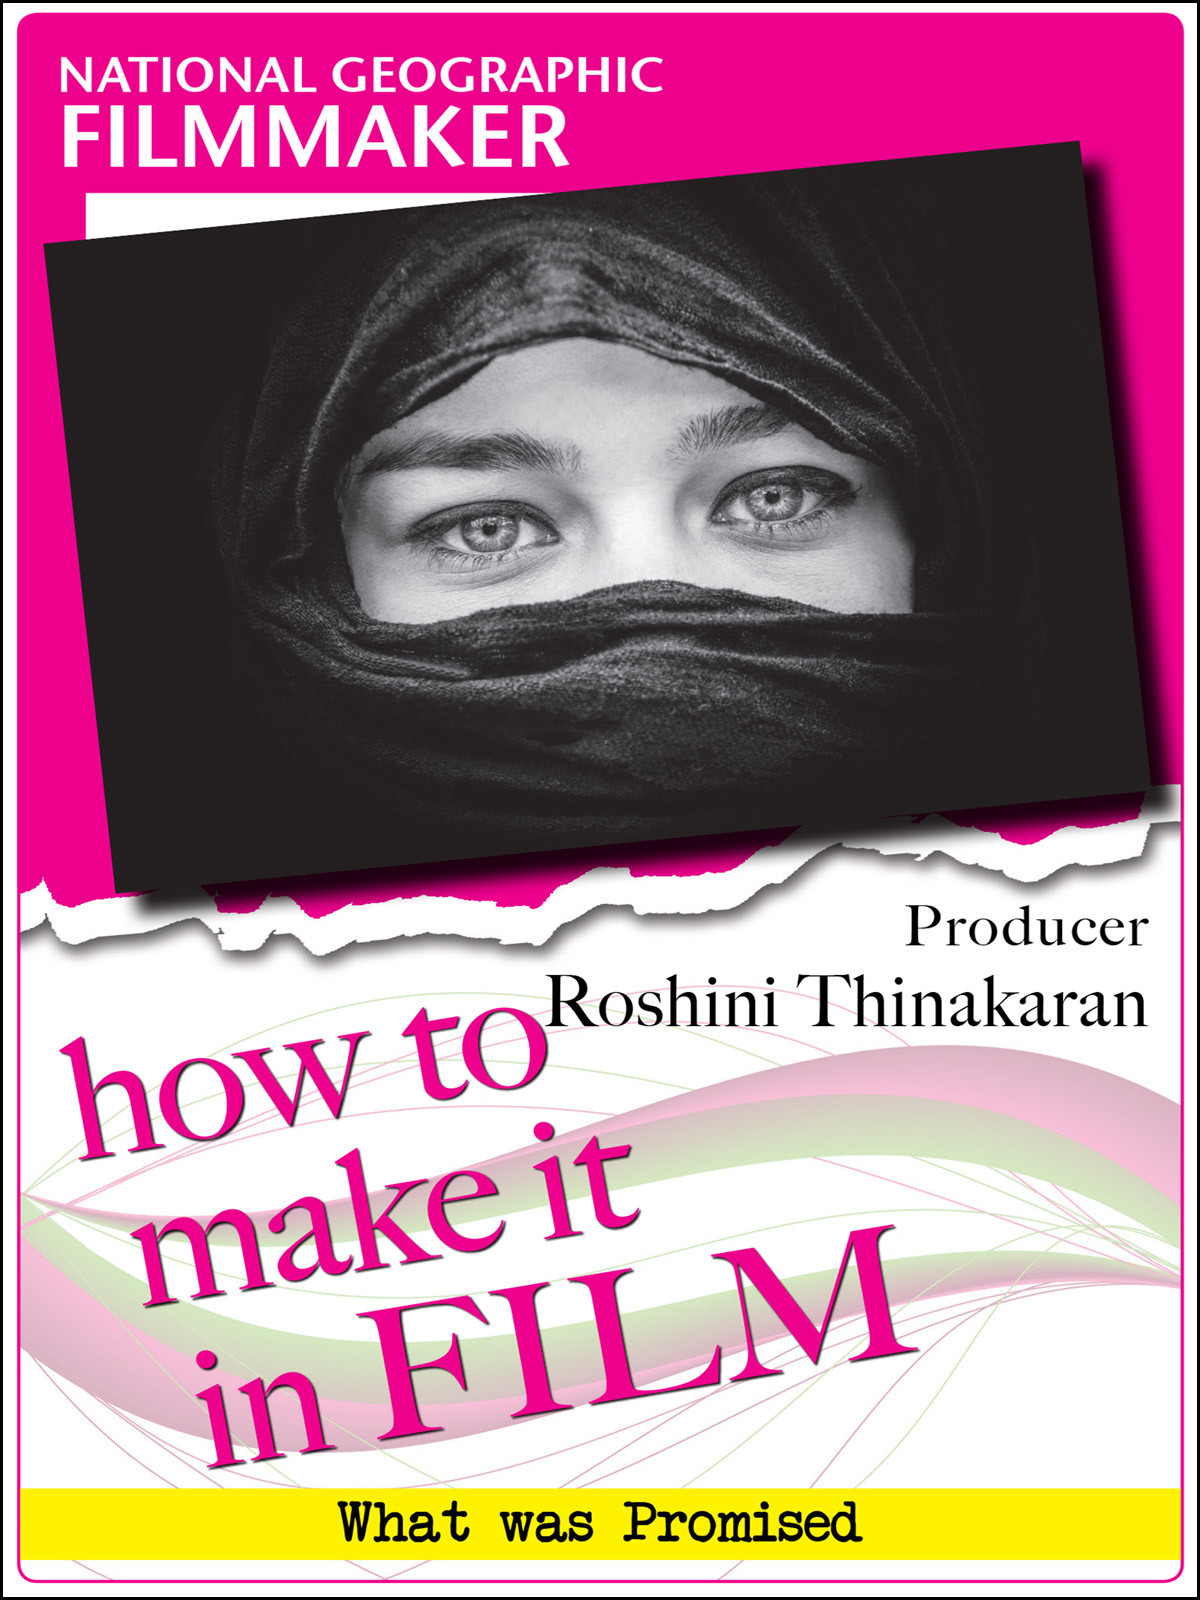 F2832 - National Geographic Filmmaker Producer Roshini Thinakaran